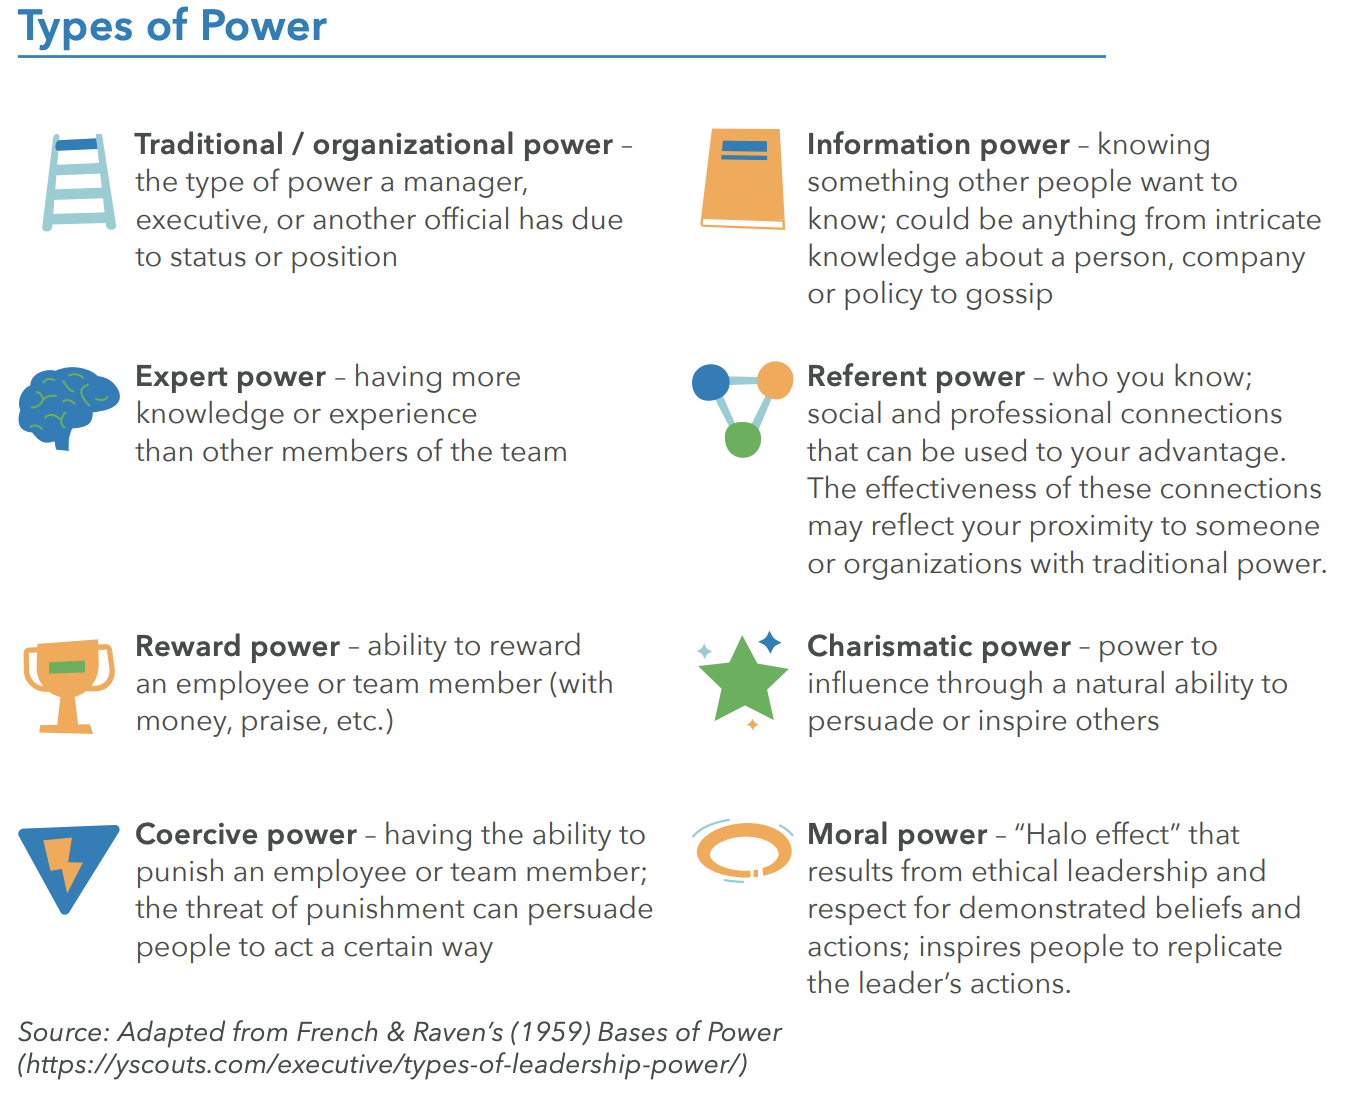 Chart of different types of power, including traditional, expert, reward, coercive, information, referent, charismatic, and moral.